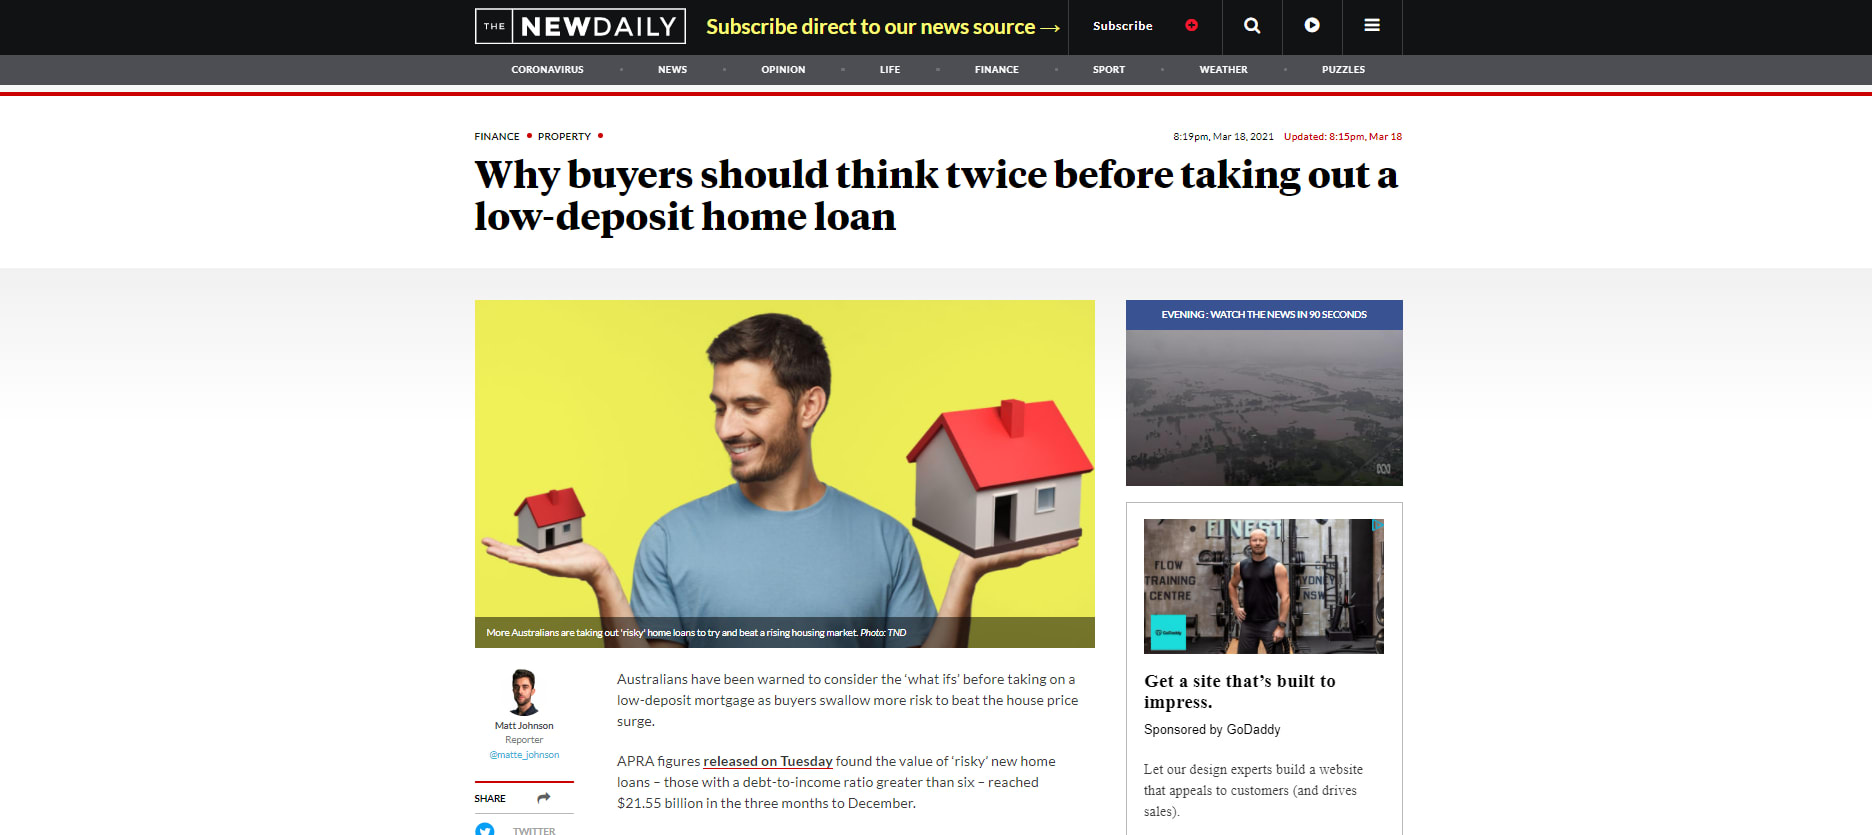 Why buyers should think twice before taking out a low-deposit home loan – The New Daily